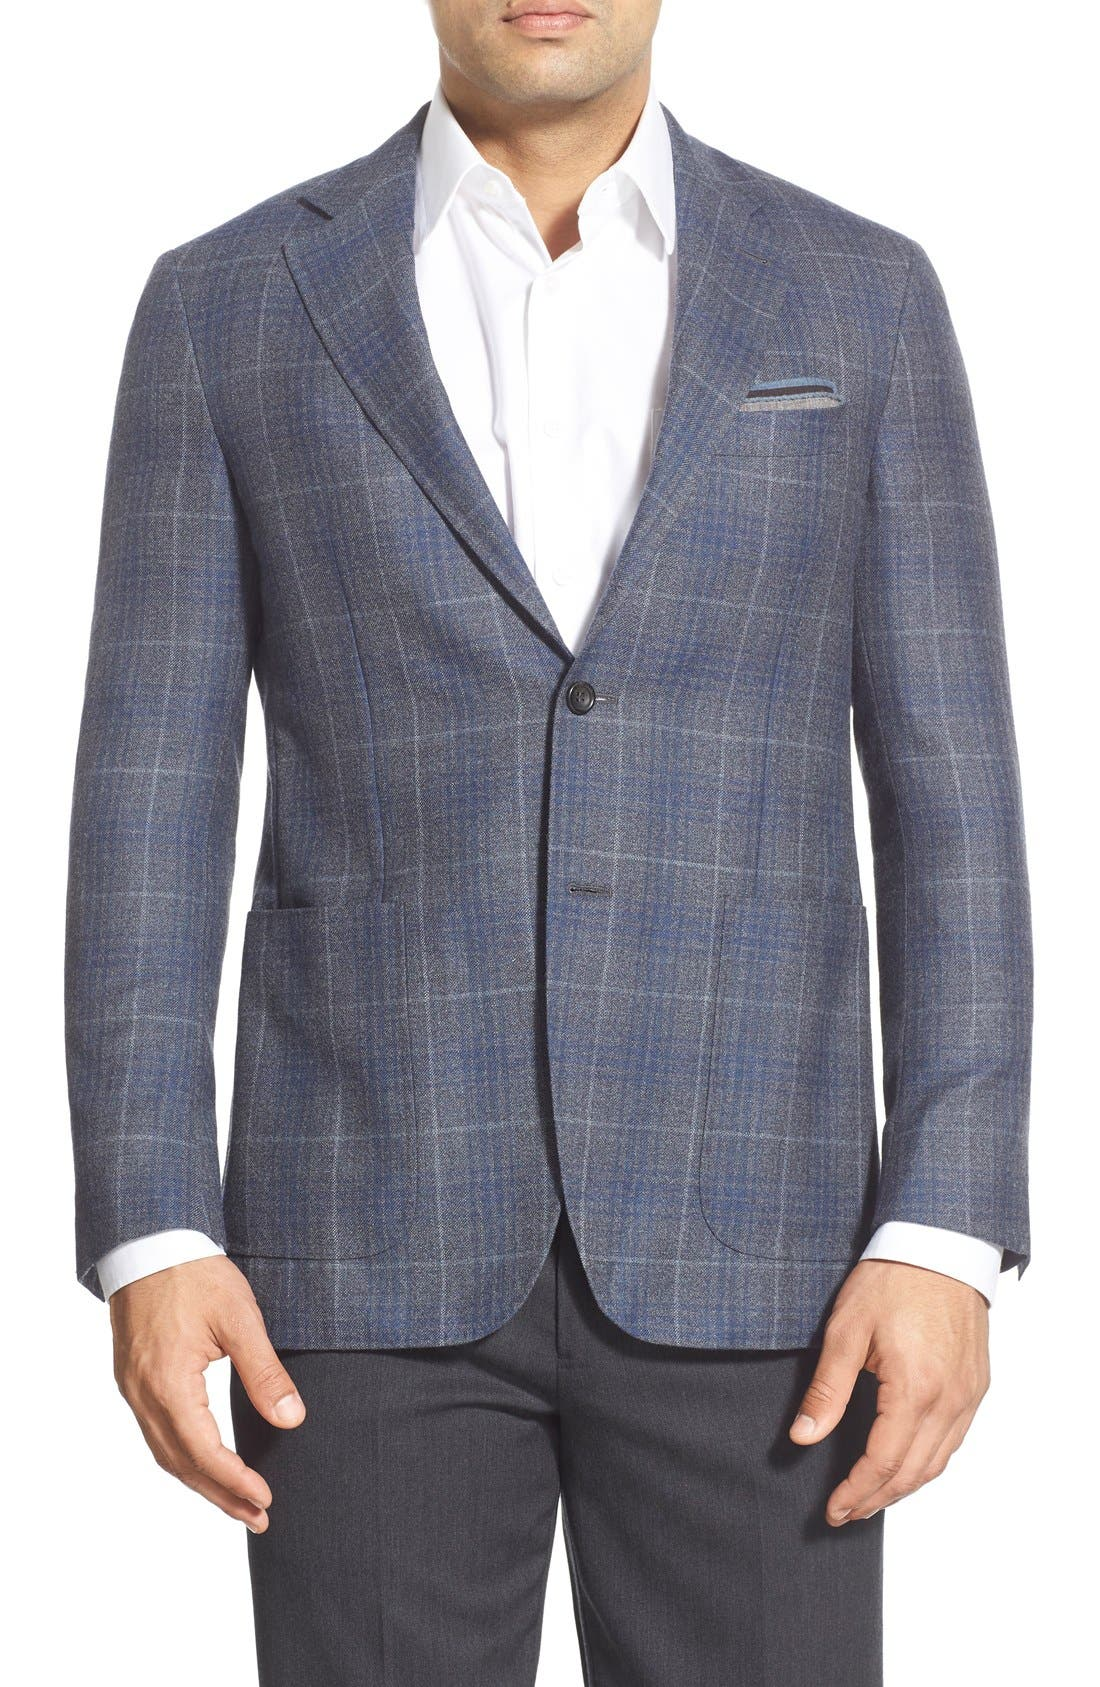 CANALI,                             Classic Fit Plaid Wool Sport Coat,                             Main thumbnail 1, color,                             030